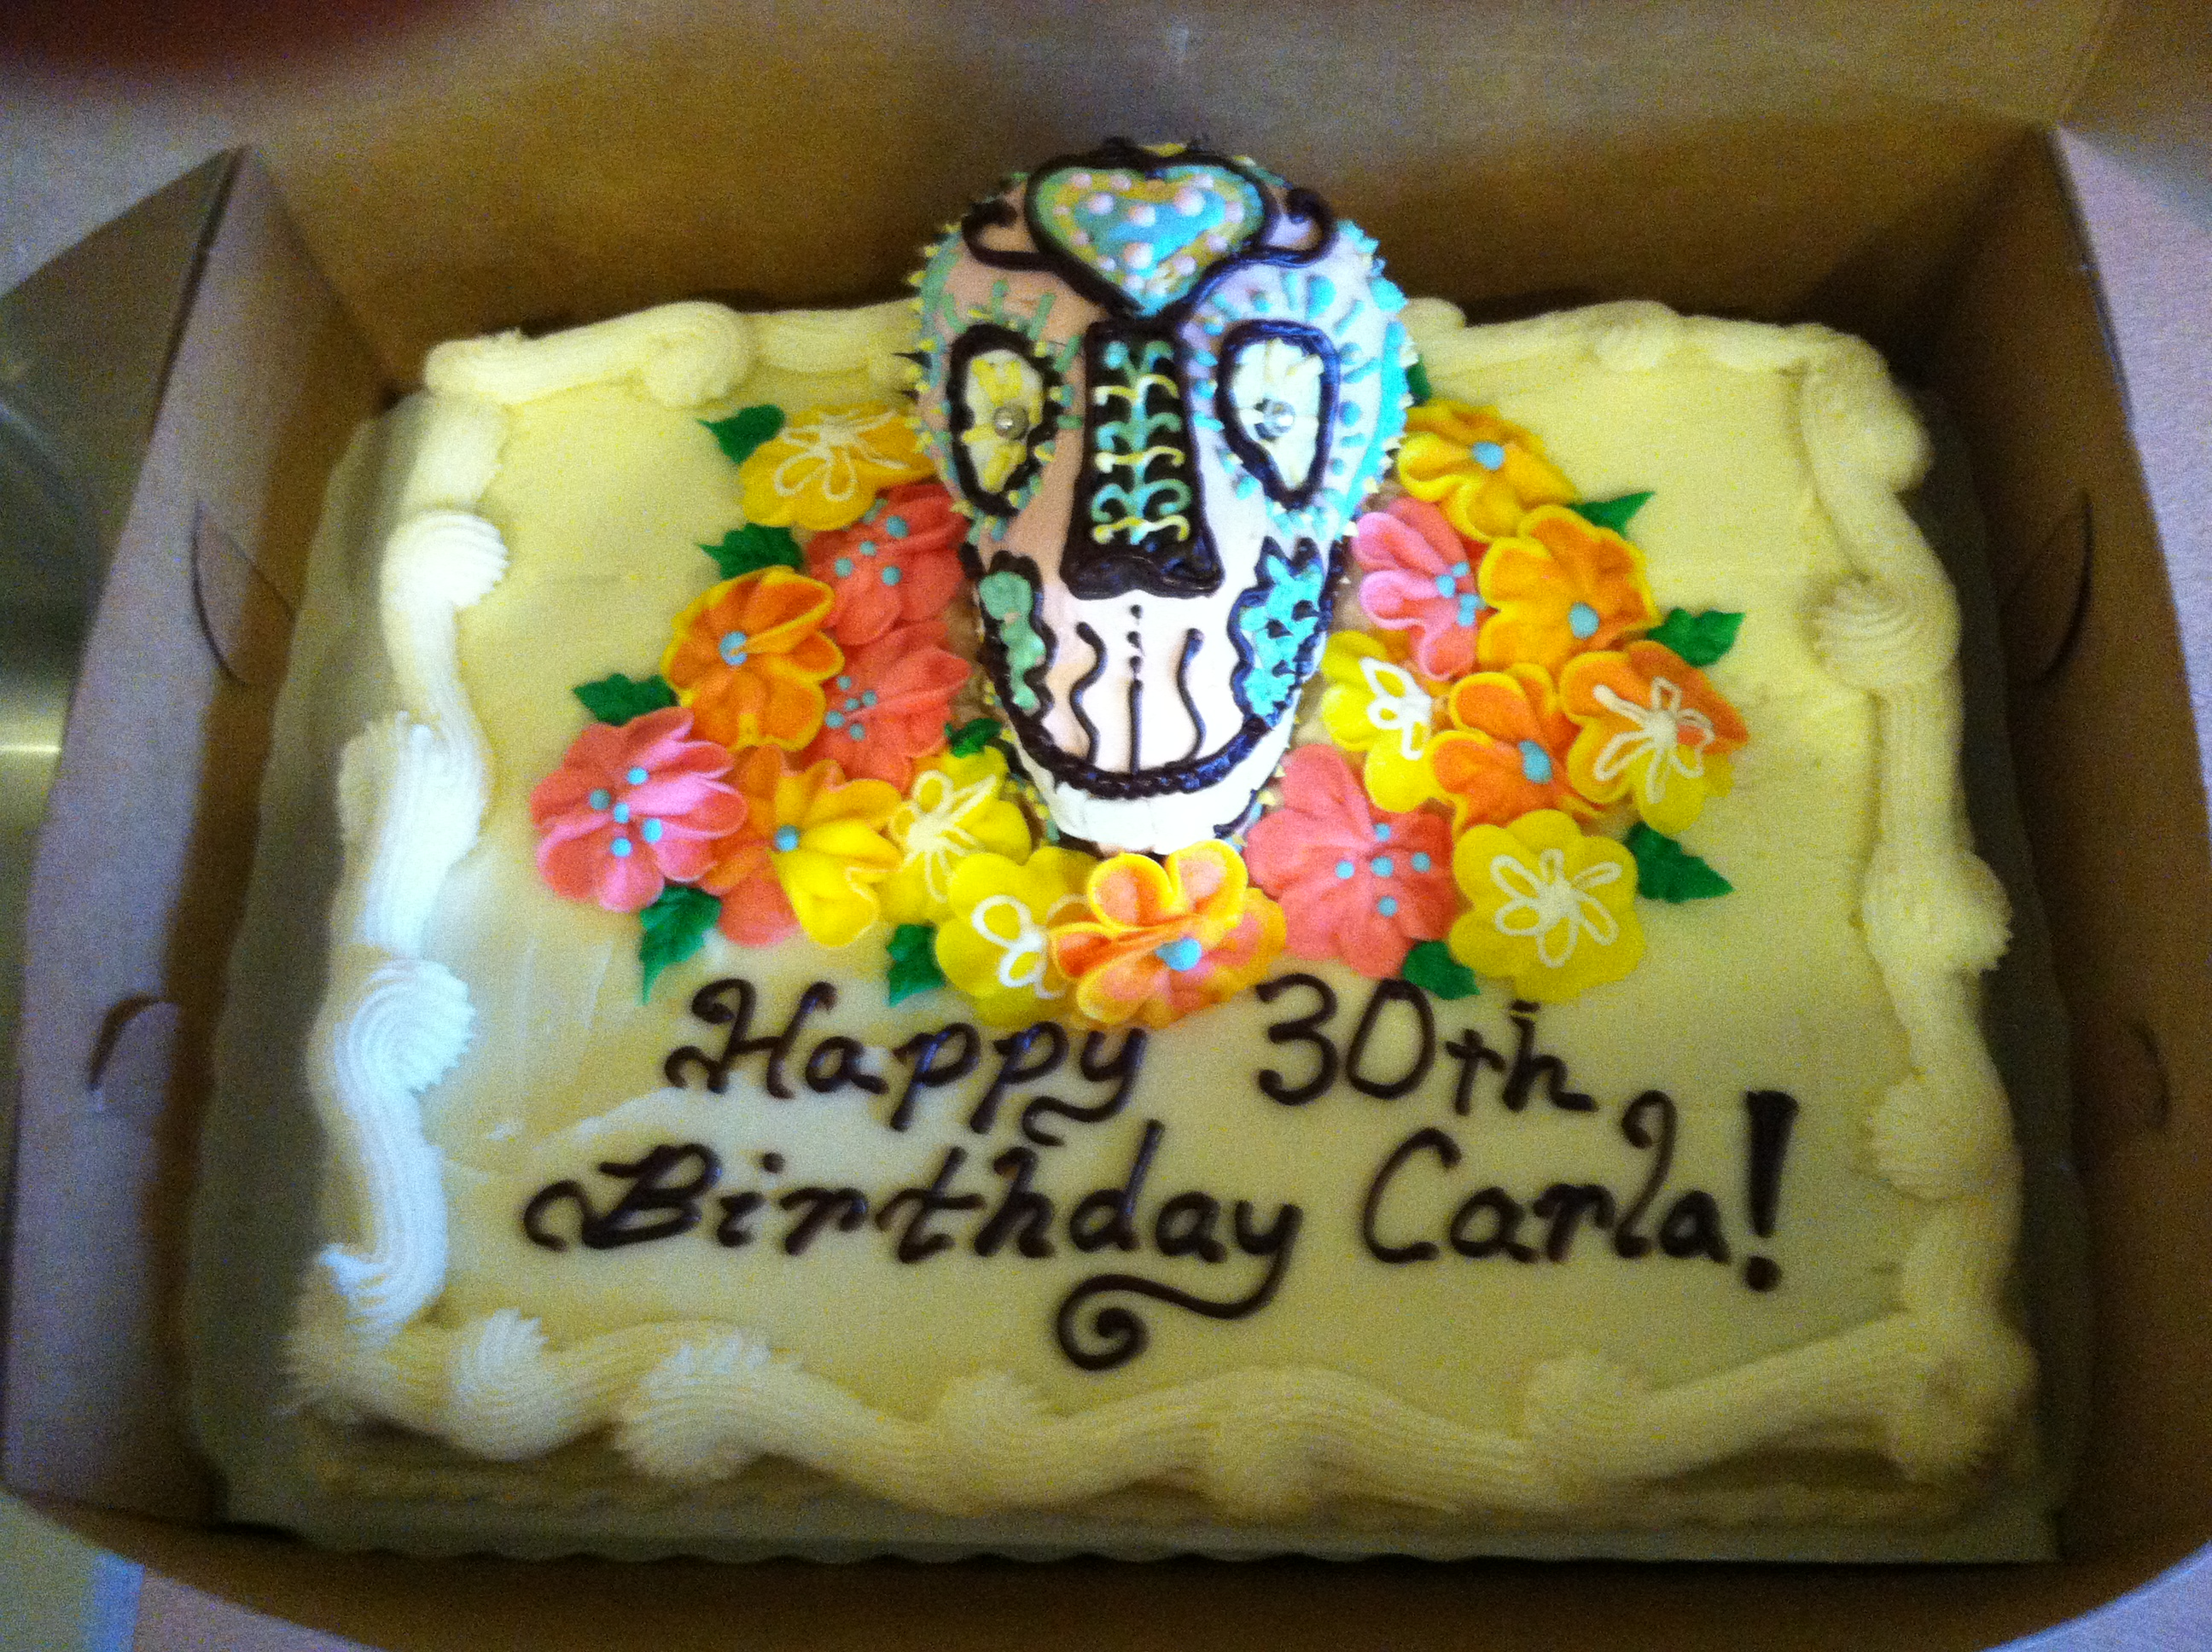 Day Of The Dead Birthday Cake Savory Fare Cafe Bakery Catering